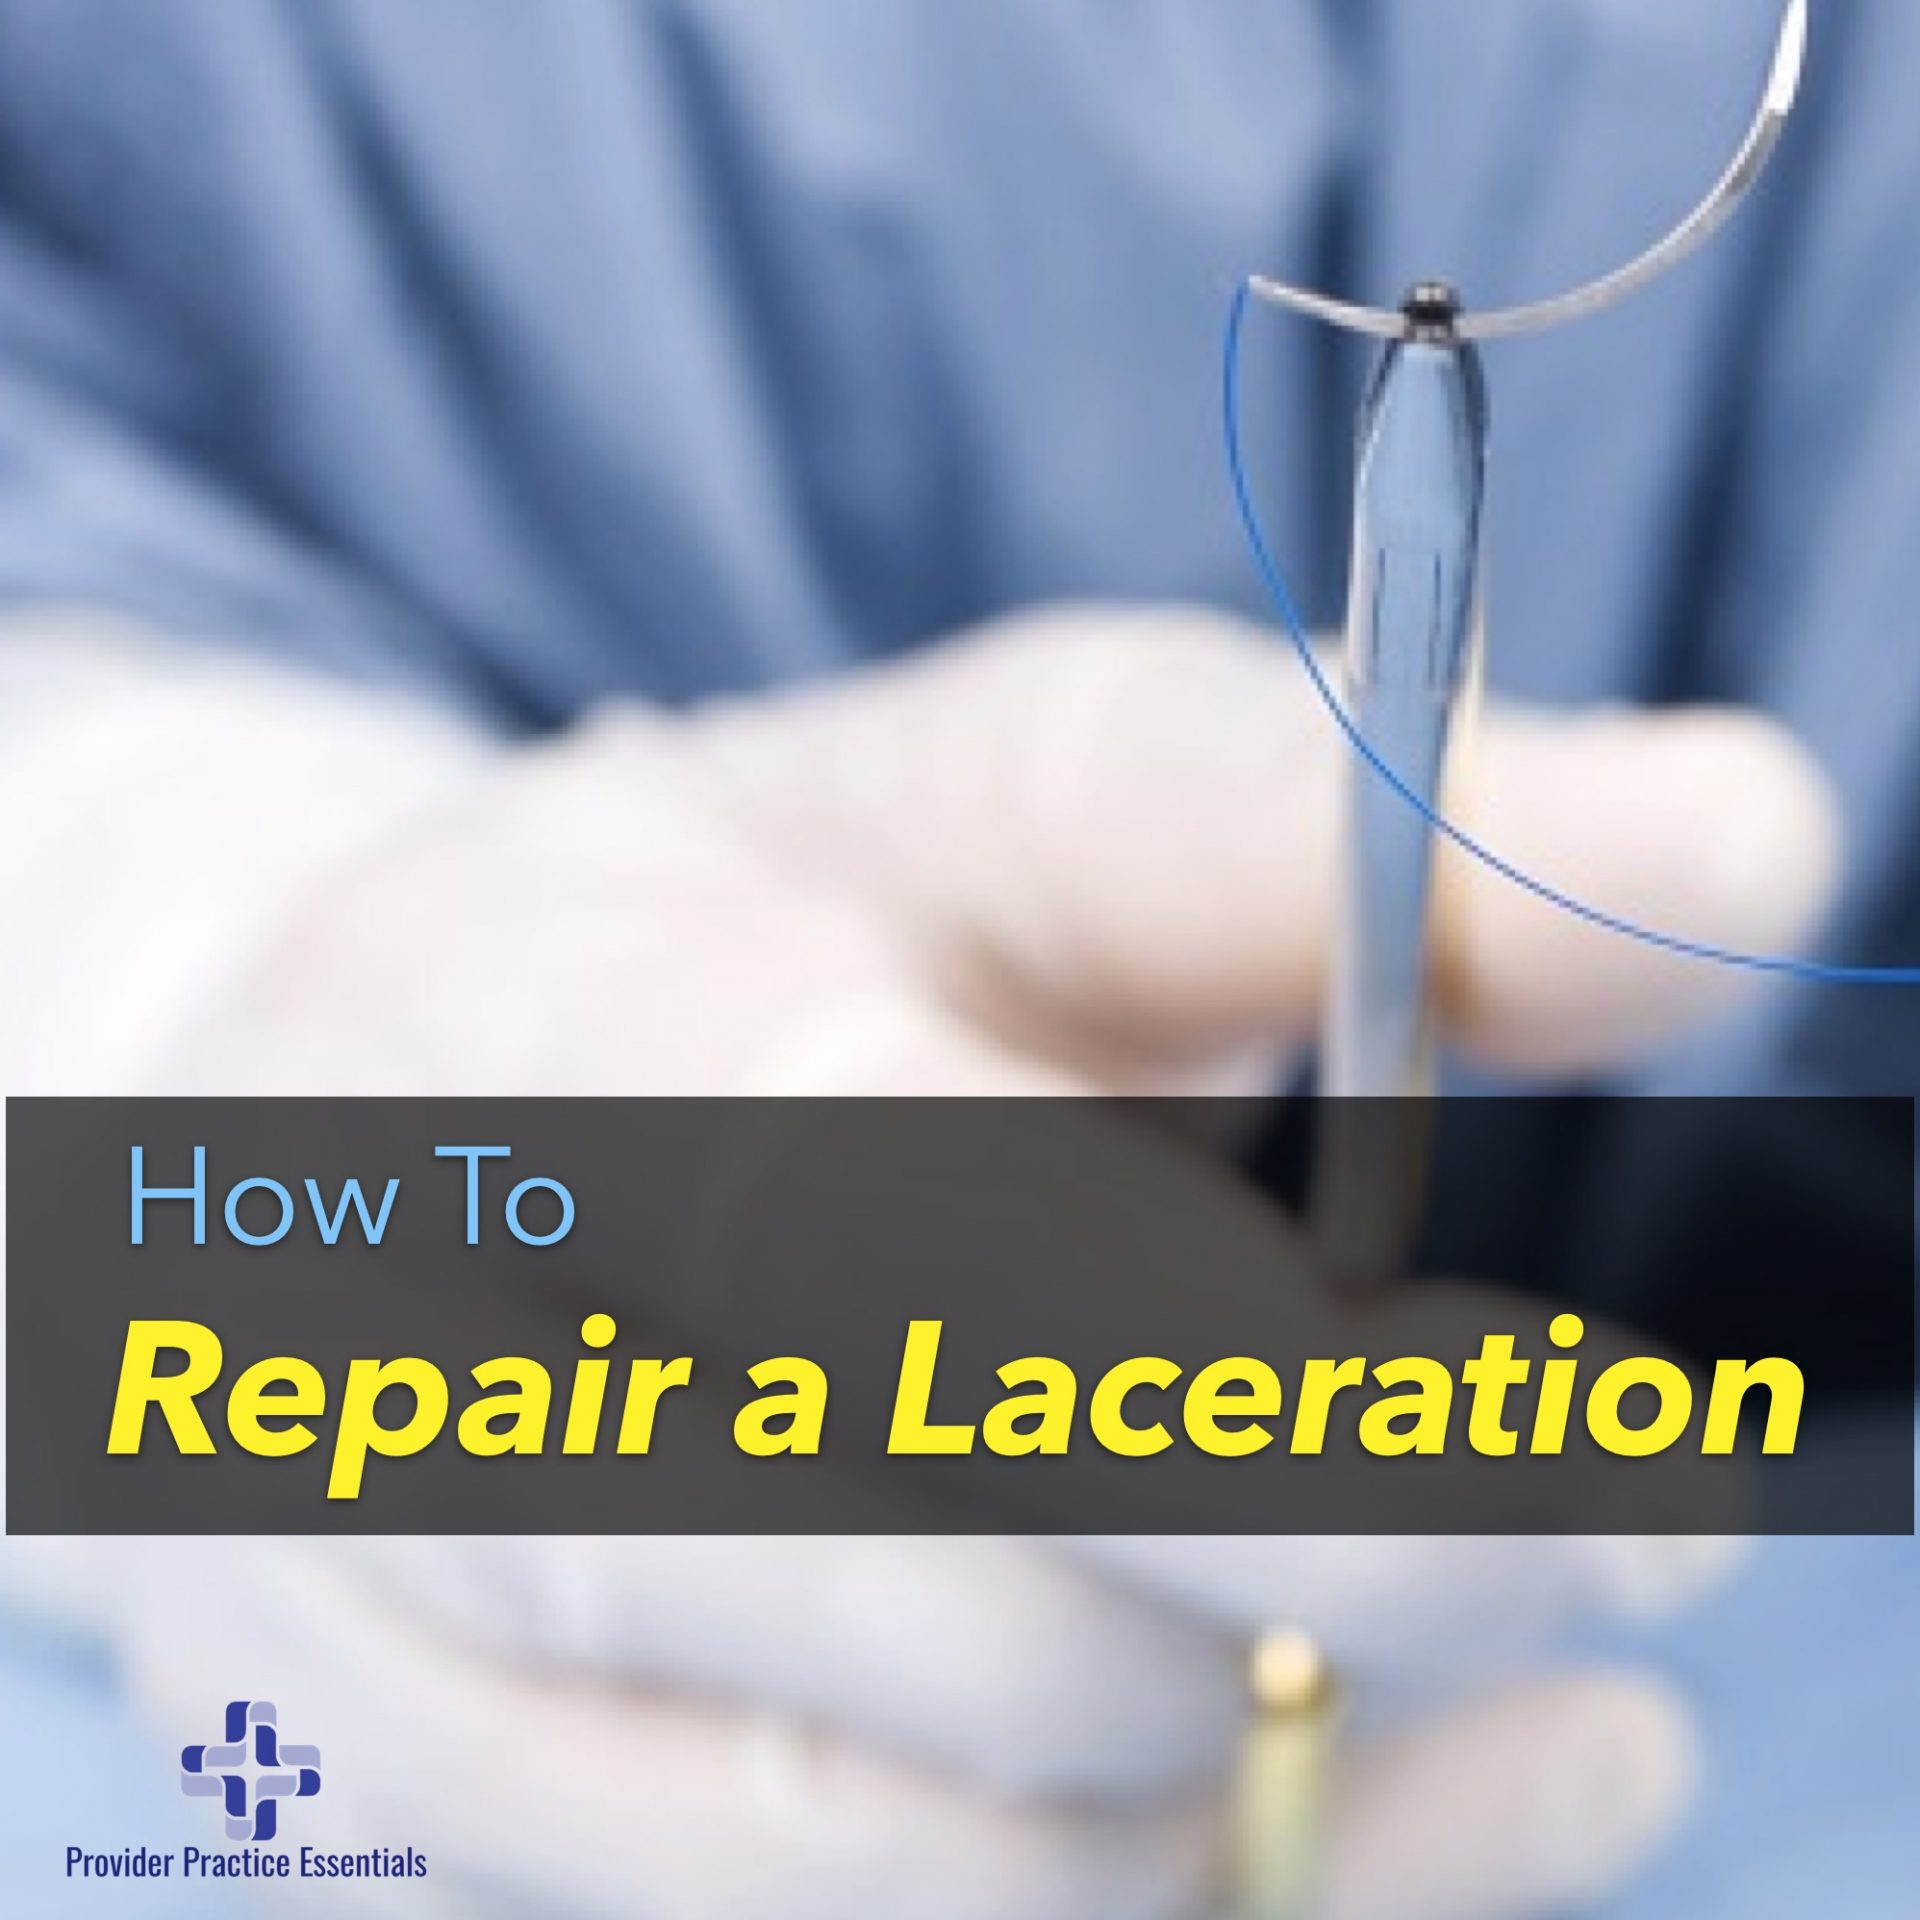 How to repair a laceration